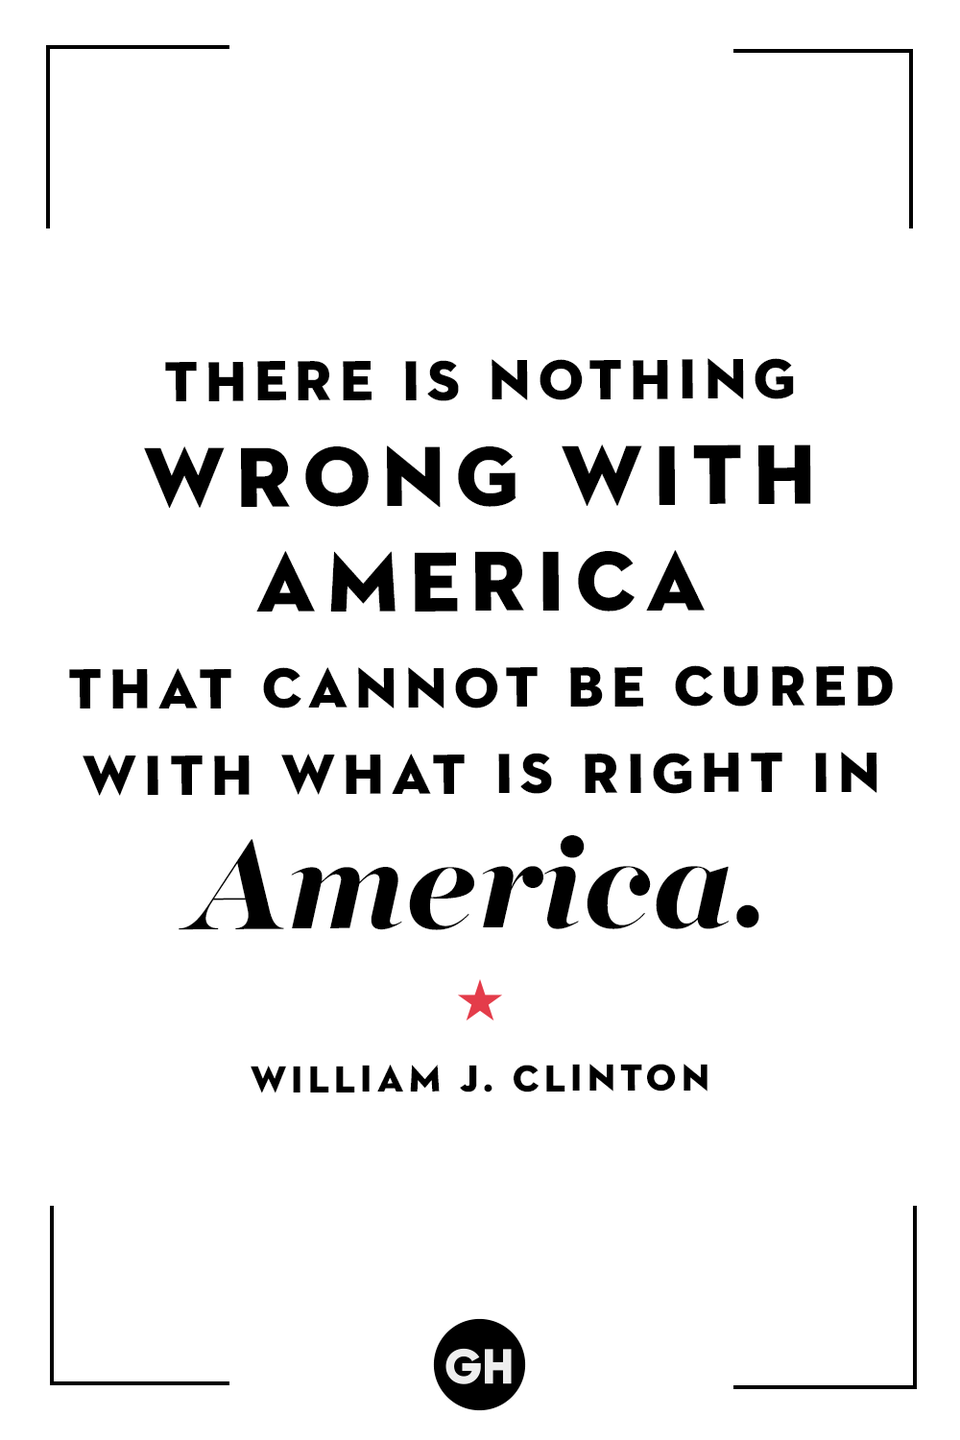 <p>There is nothing wrong with America that cannot be cured with what is right in America.</p>